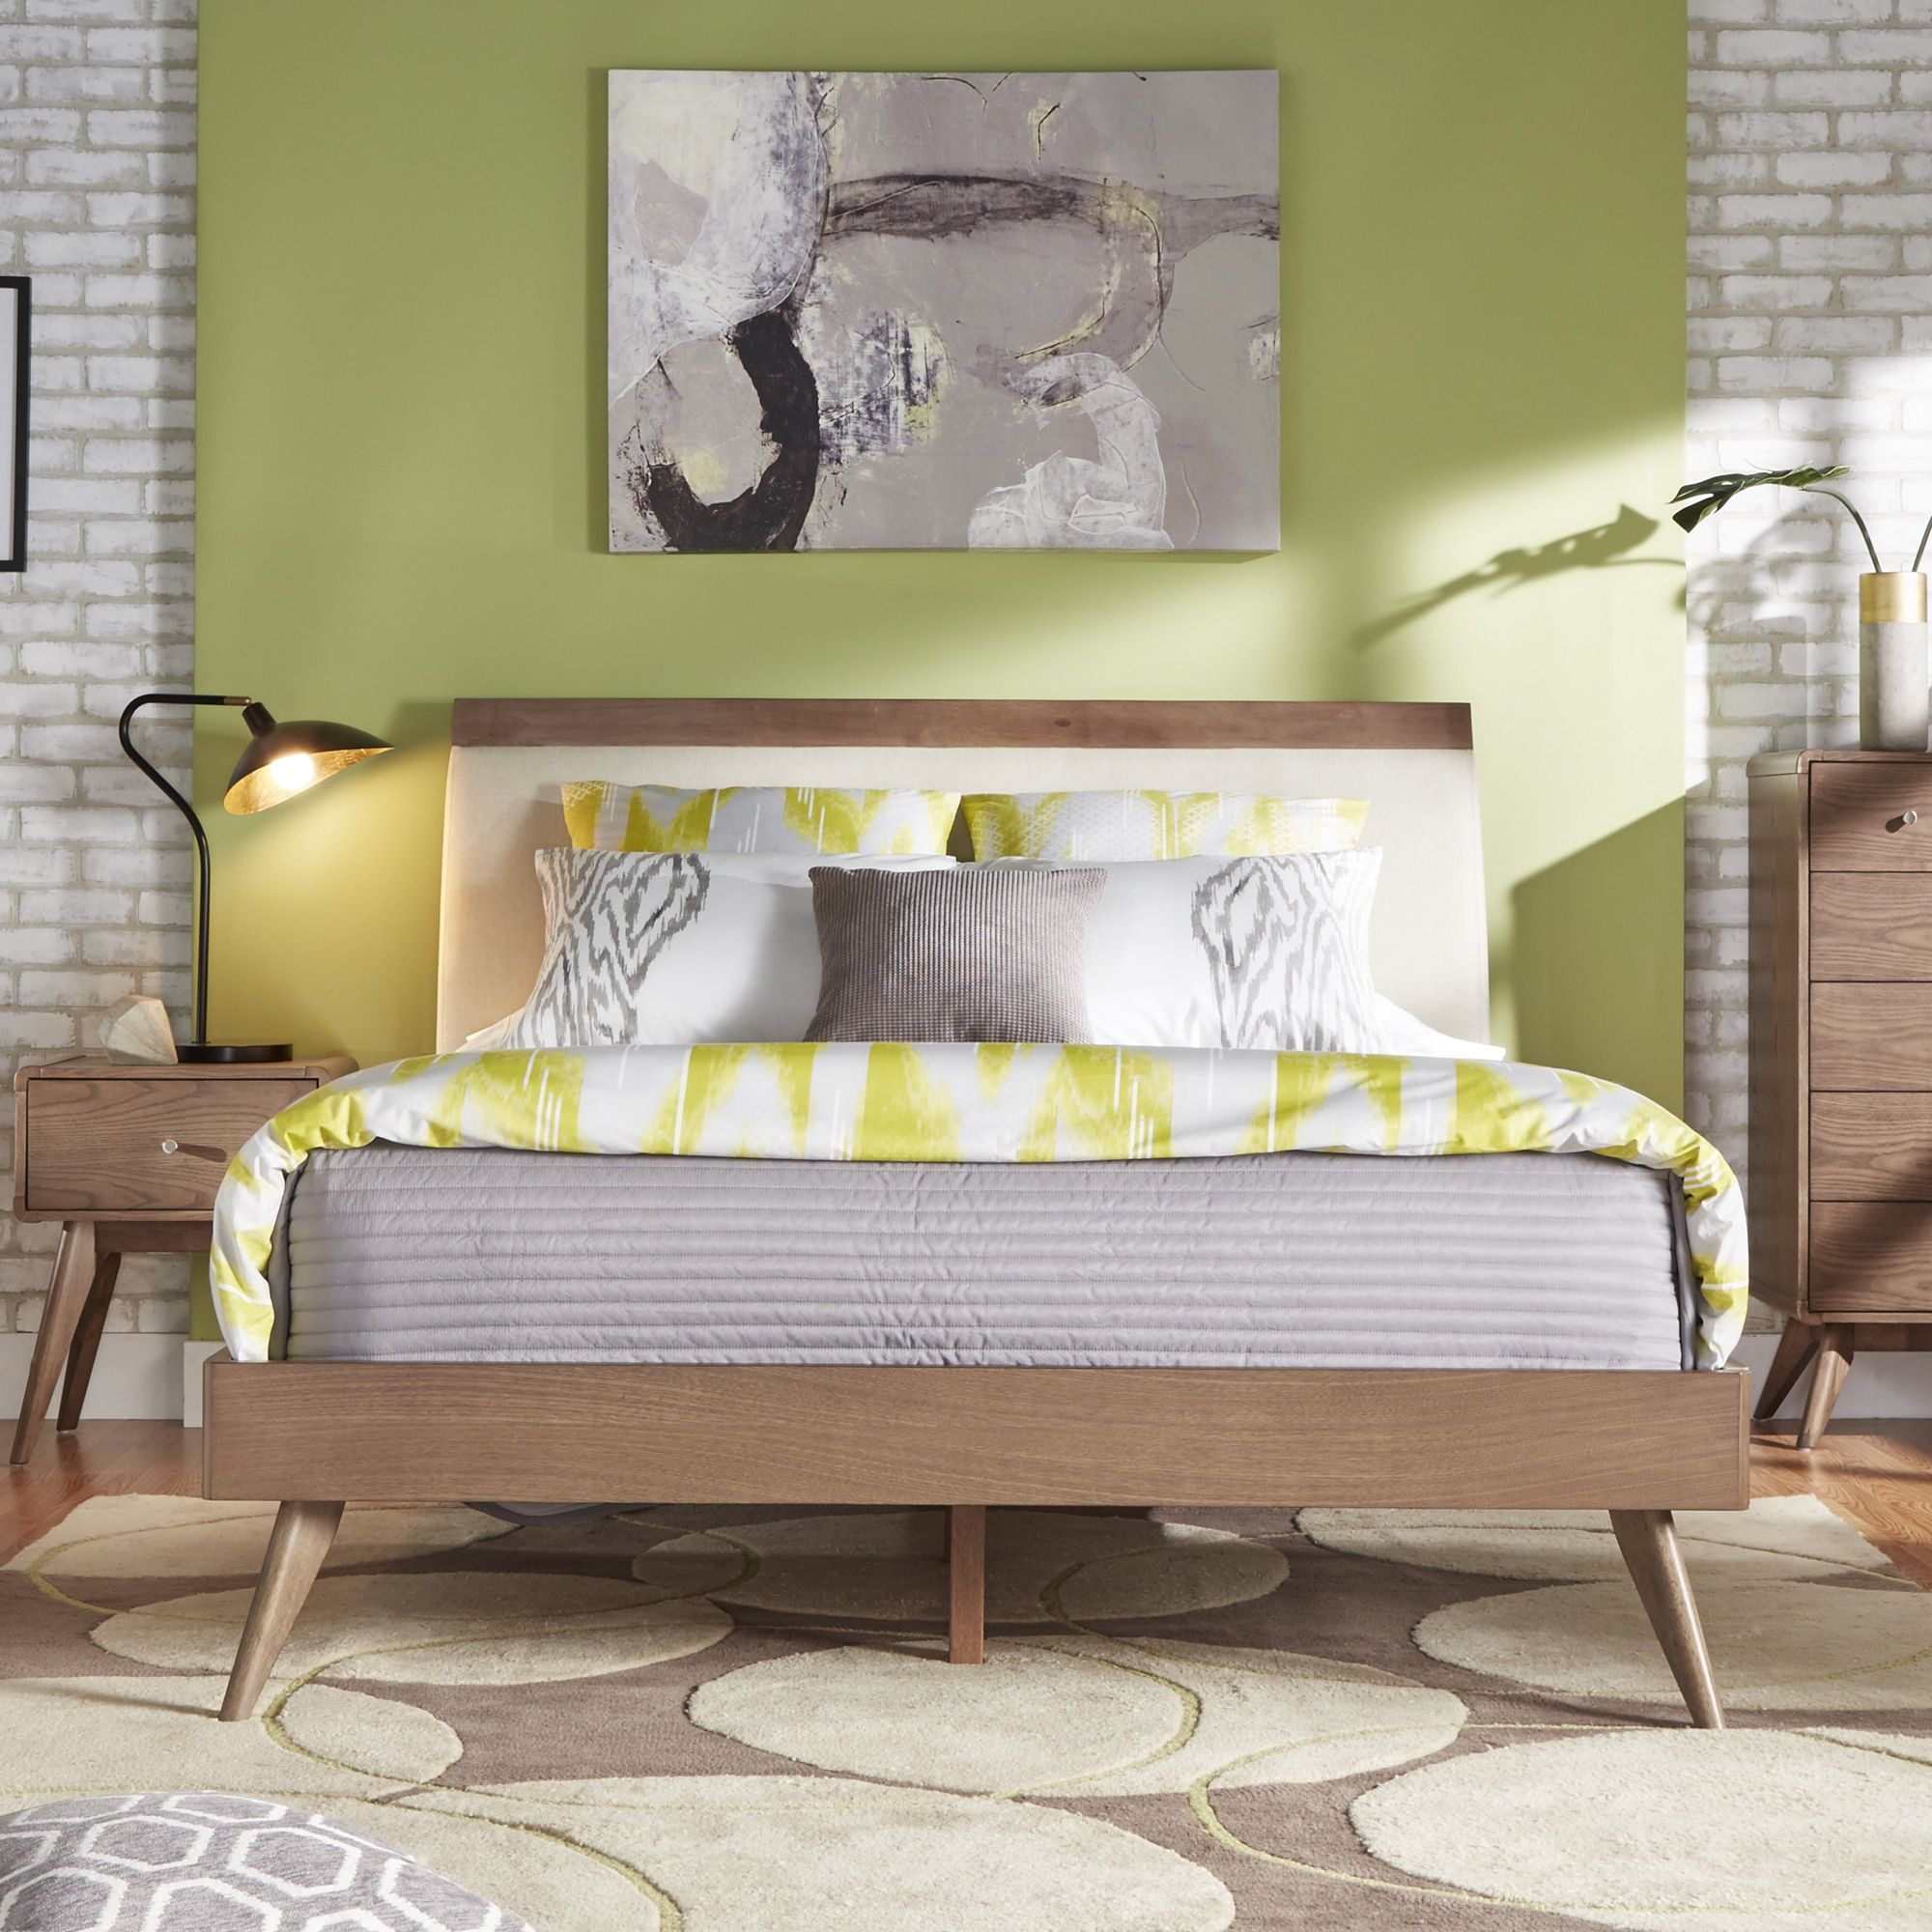 Penelope Tapered Leg Platform Bed iNSPIRE Q Modern (Queen Platform Bed  without Headboard),